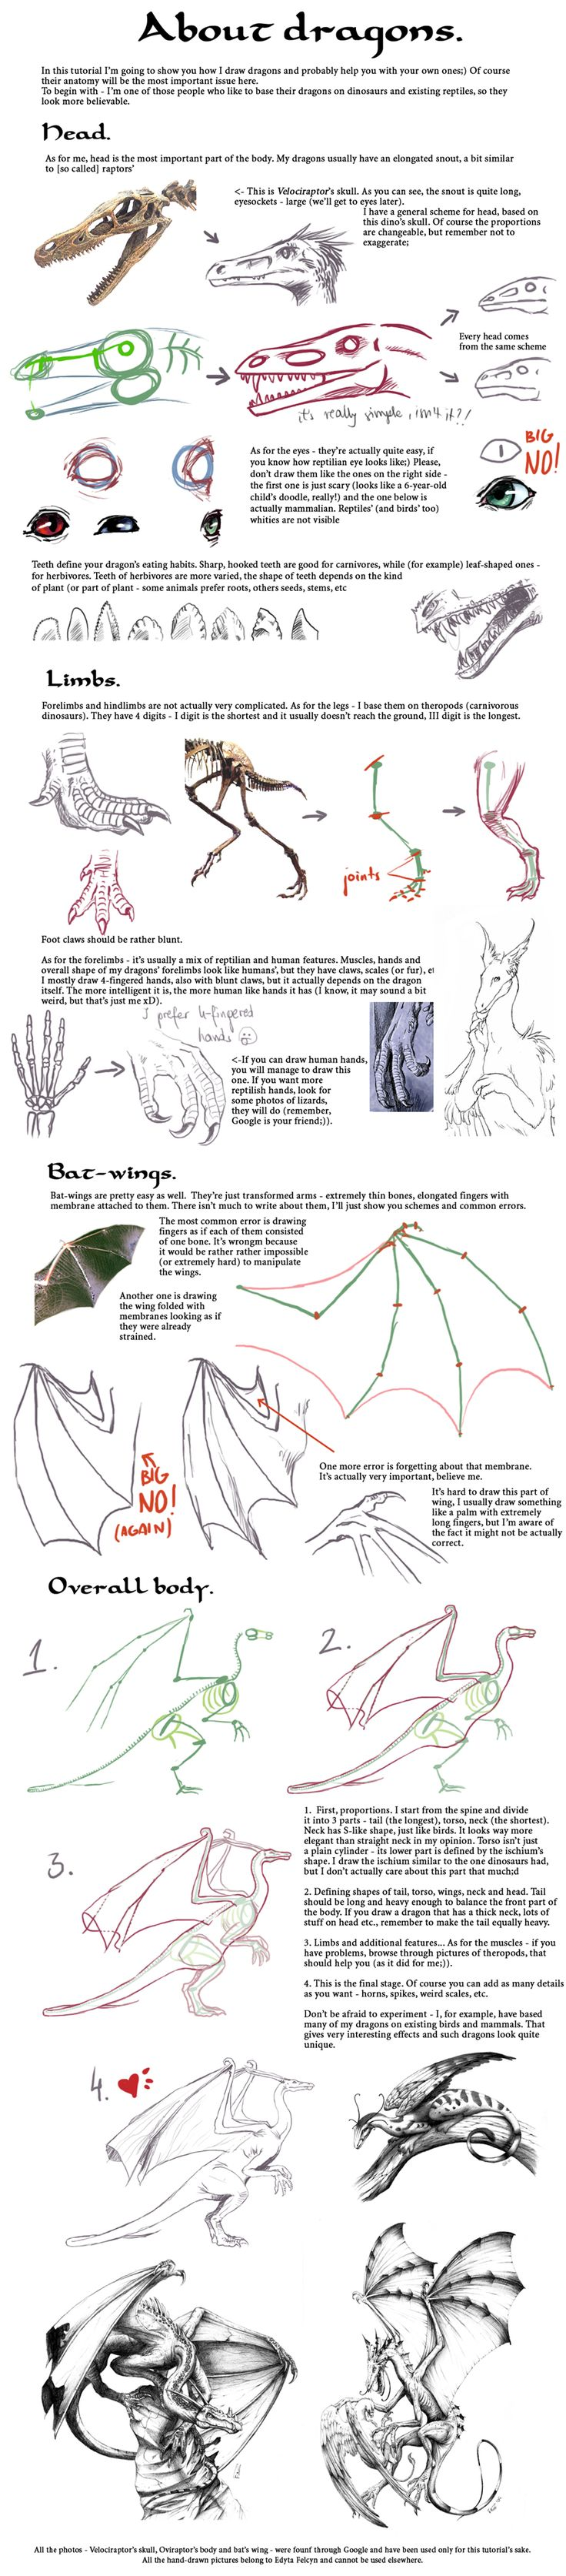 Tutorial: Dragons by =Sheil    CHARACTER DESIGN REFERENCES   Find more at https://www.facebook.com/CharacterDesignReferences if you're looking for: #art #character #design #model #sheet #illustration #best #concept #animation #drawing #archive #library #reference #anatomy #traditional #draw #development #artist #how #to #tutorial #conceptart #modelsheet #dragon #dragons